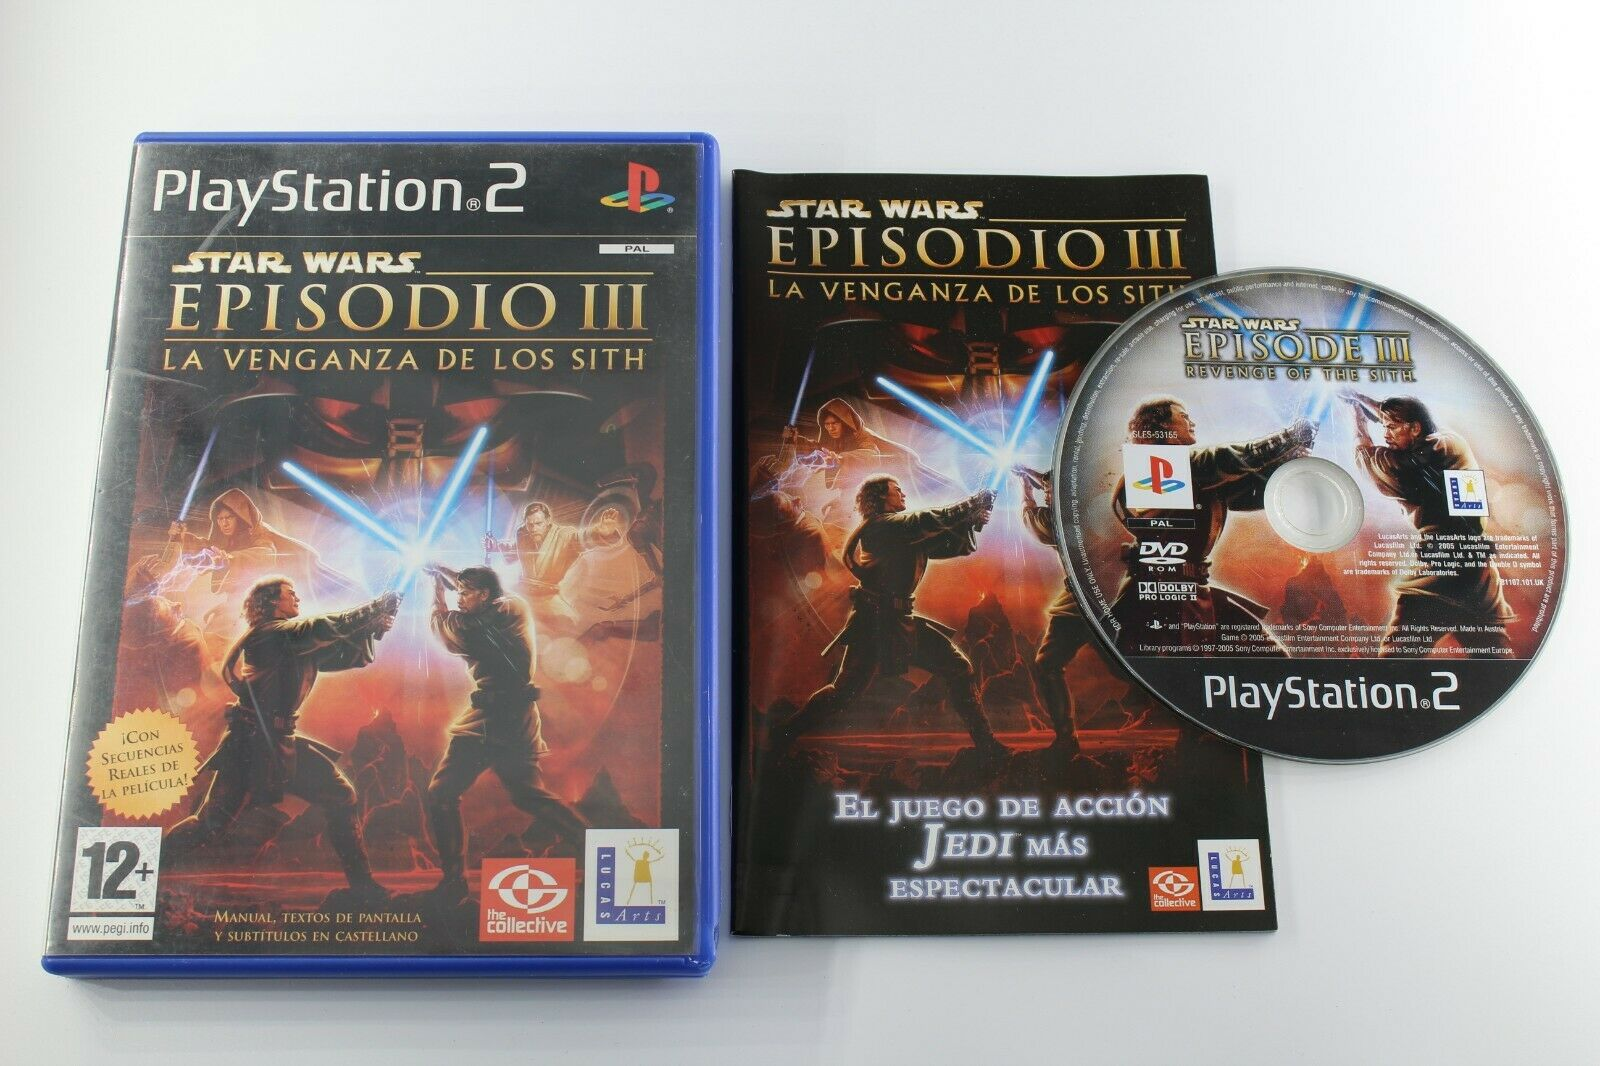 PLAY STATION 2 PS2 STAR WARS EPISODIO III LA - pas cher StarWars